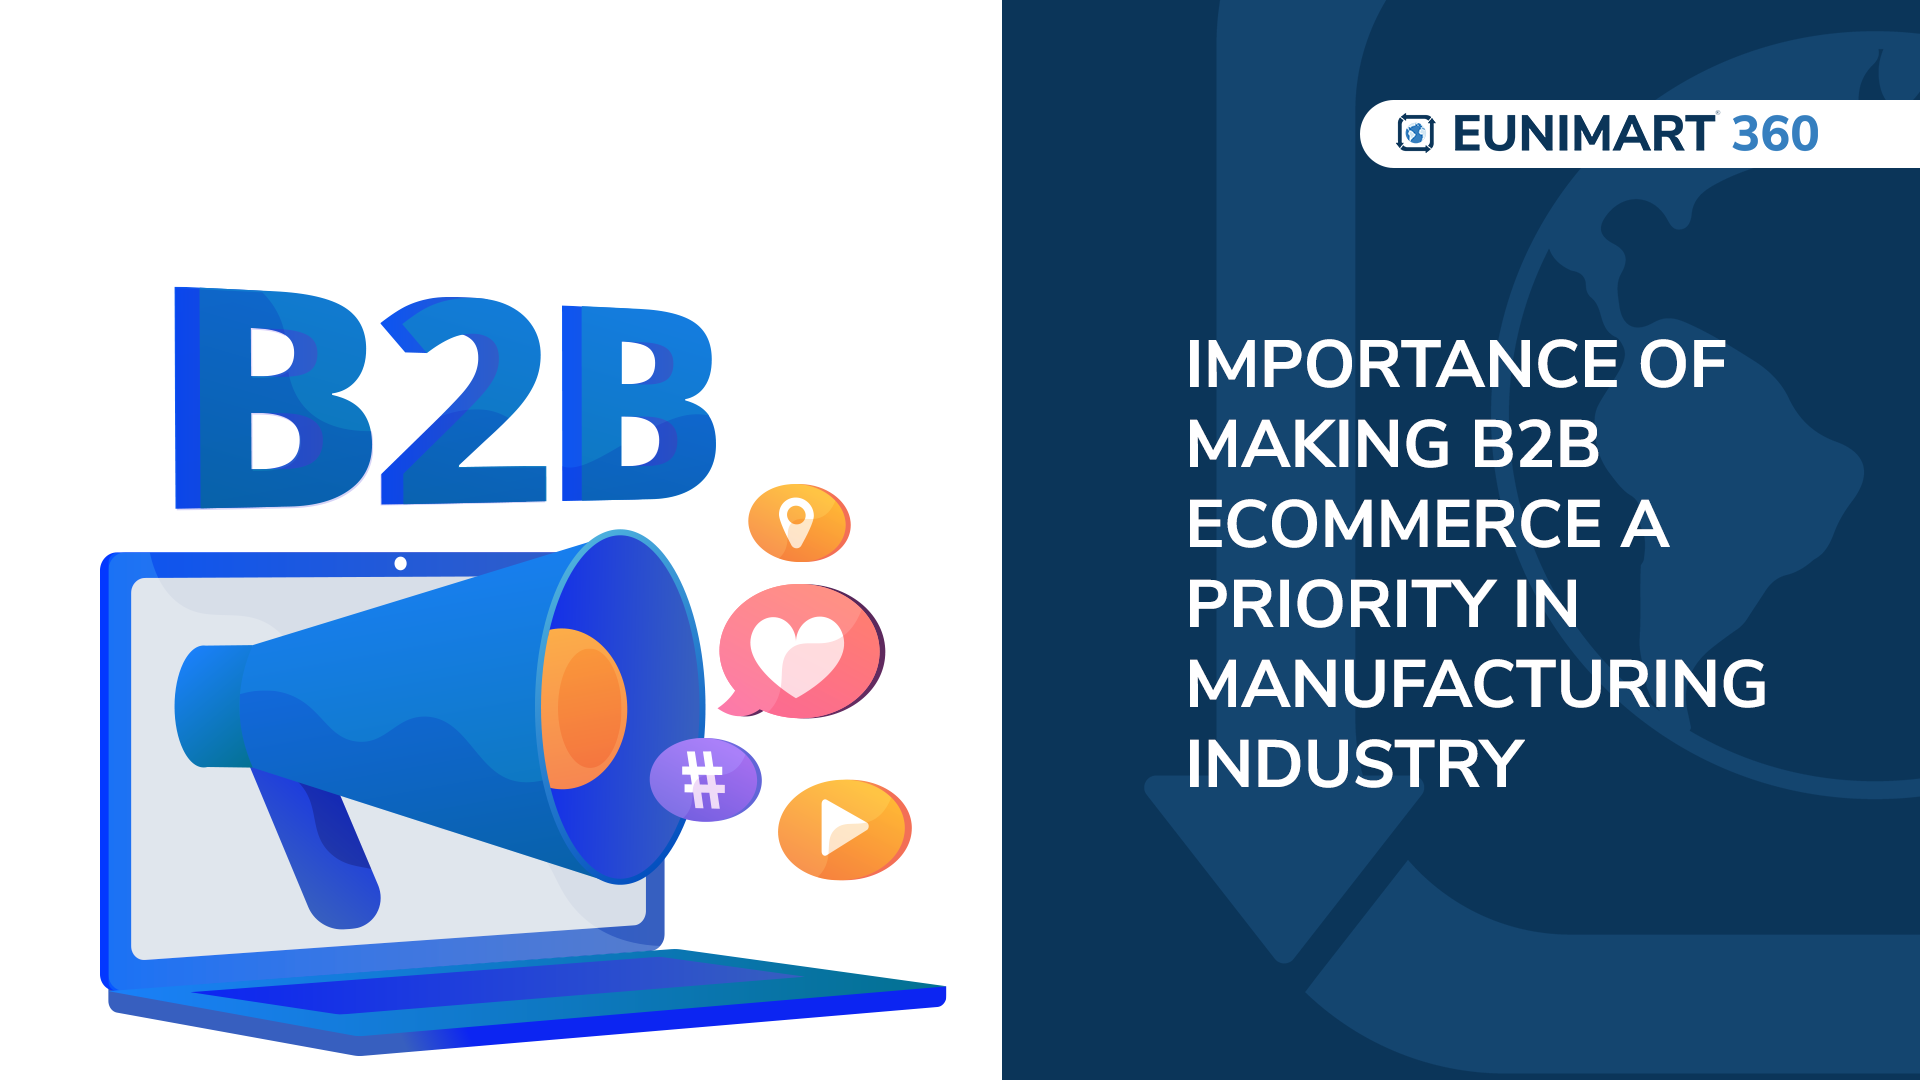 Importance of making B2B ecommerce a priority in manufacturing industry